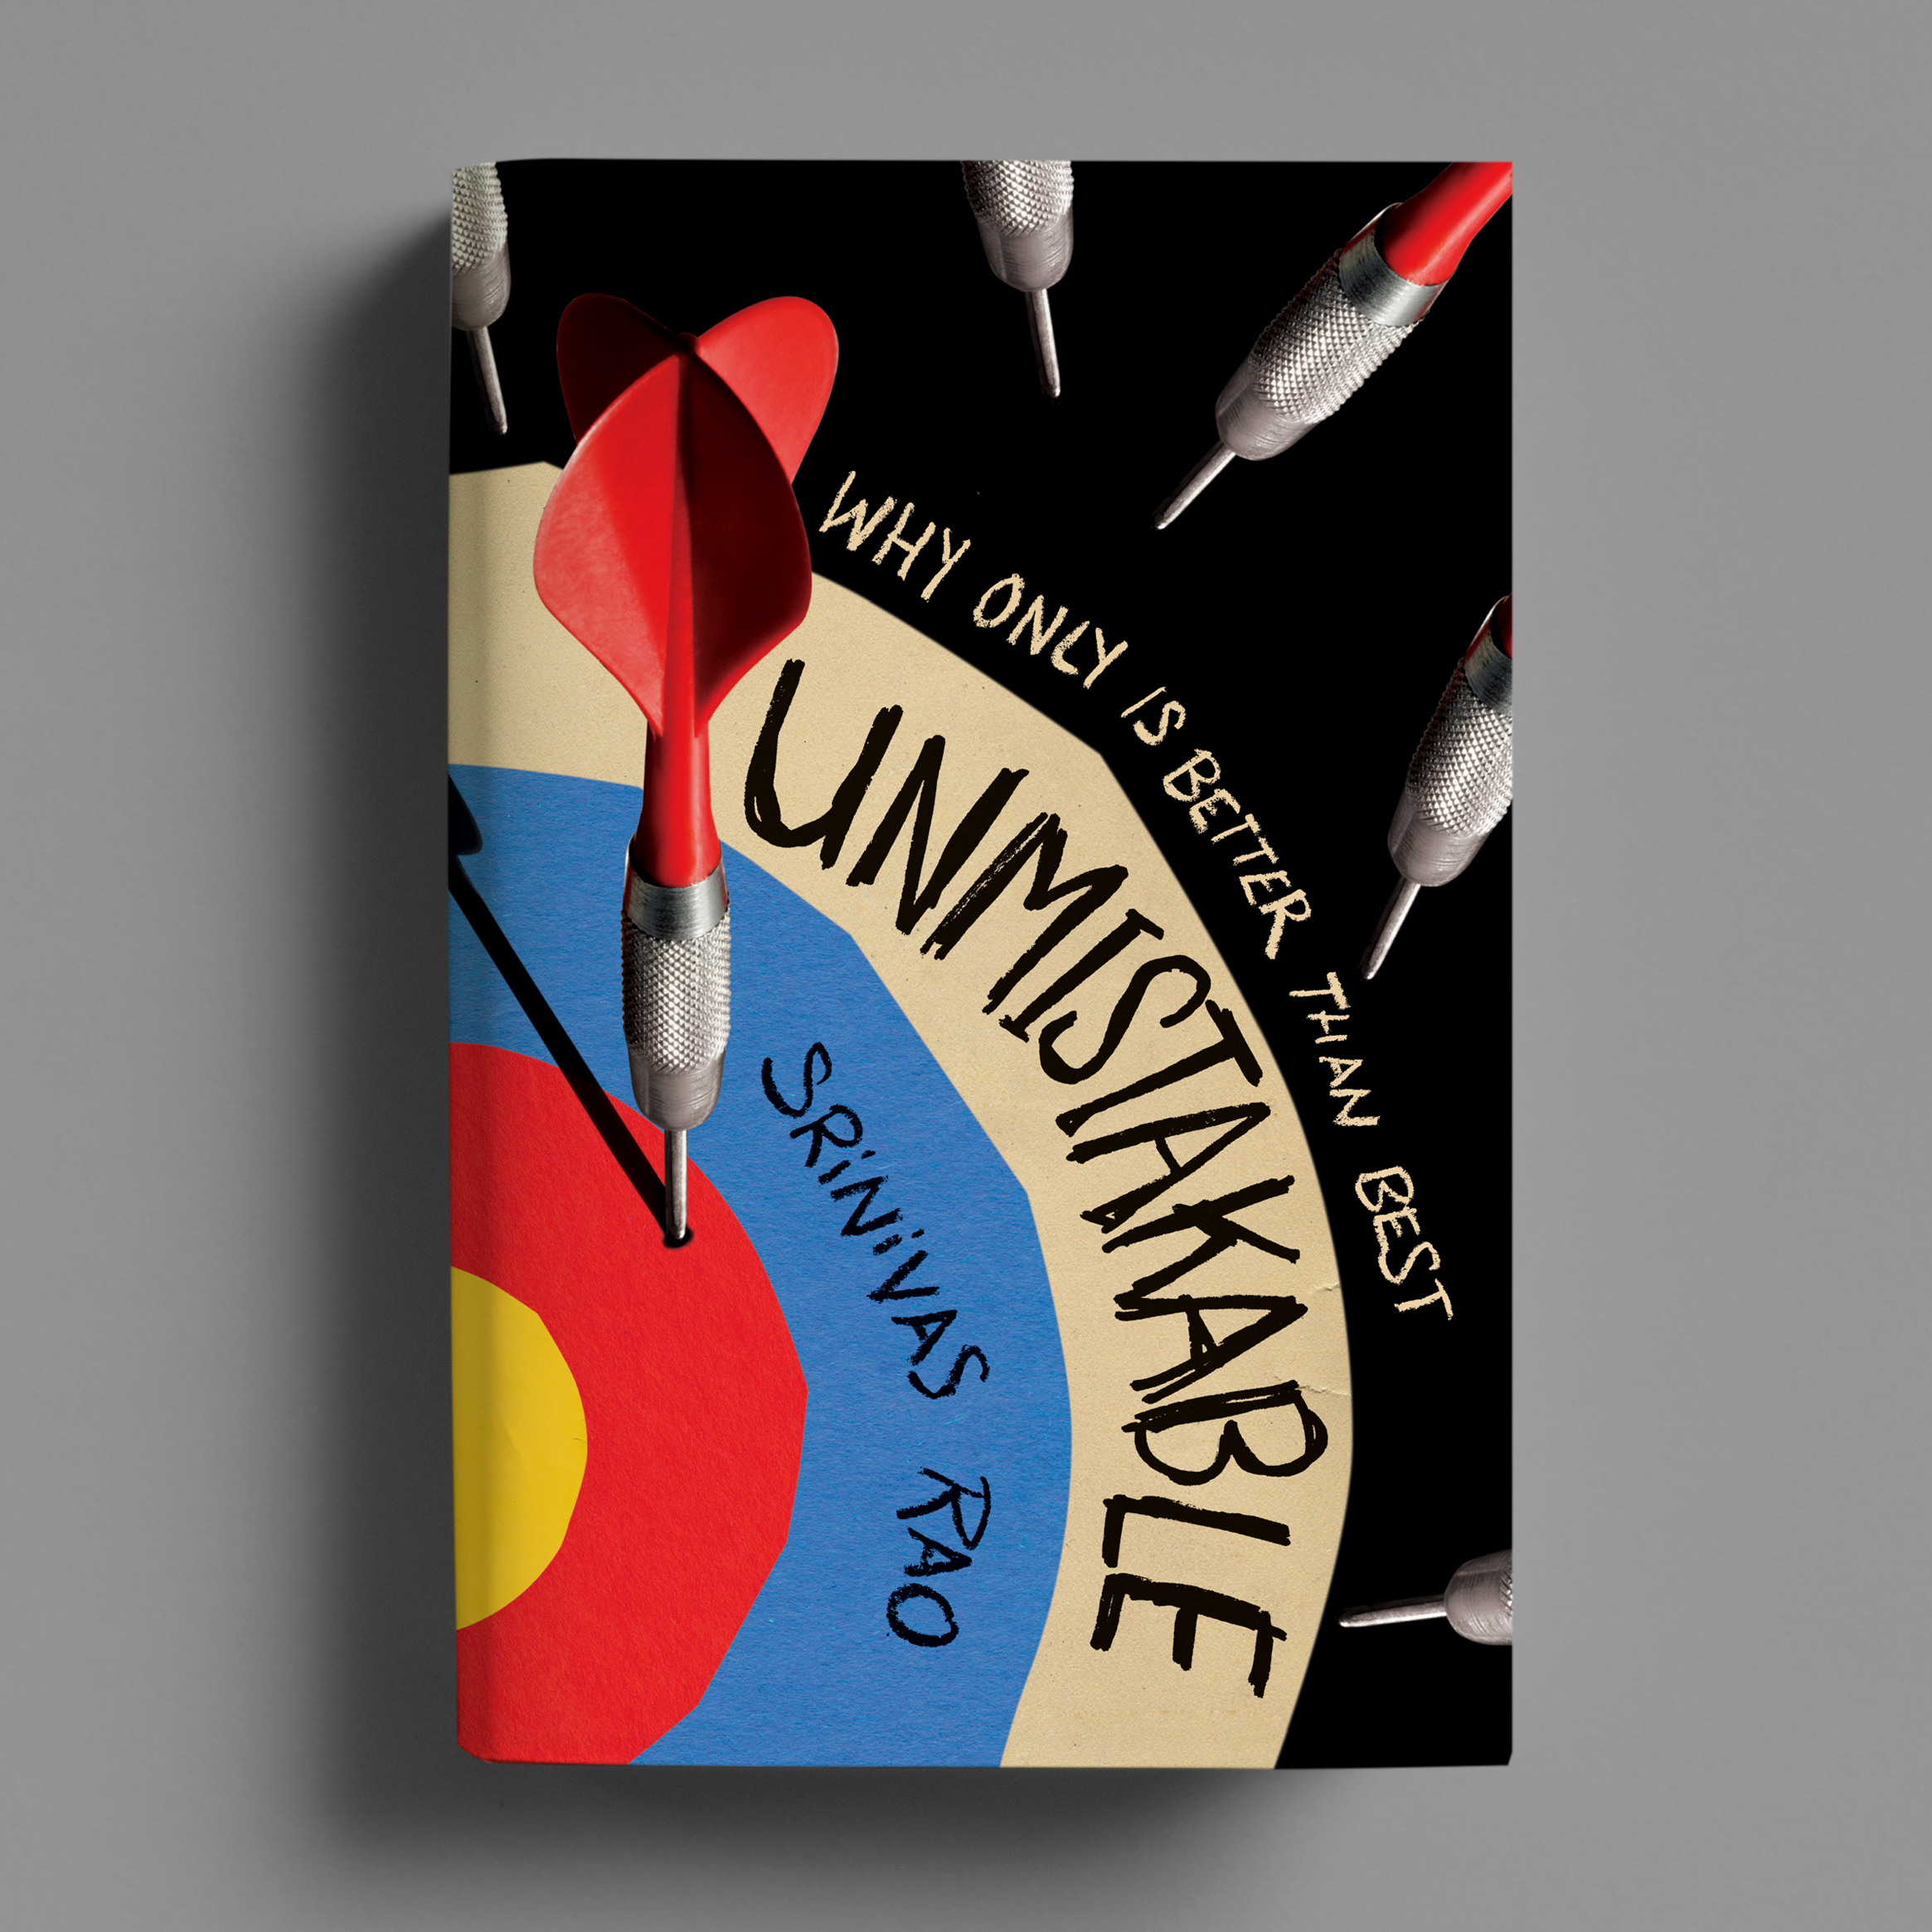 Spine Magazine interview: Unmistakable